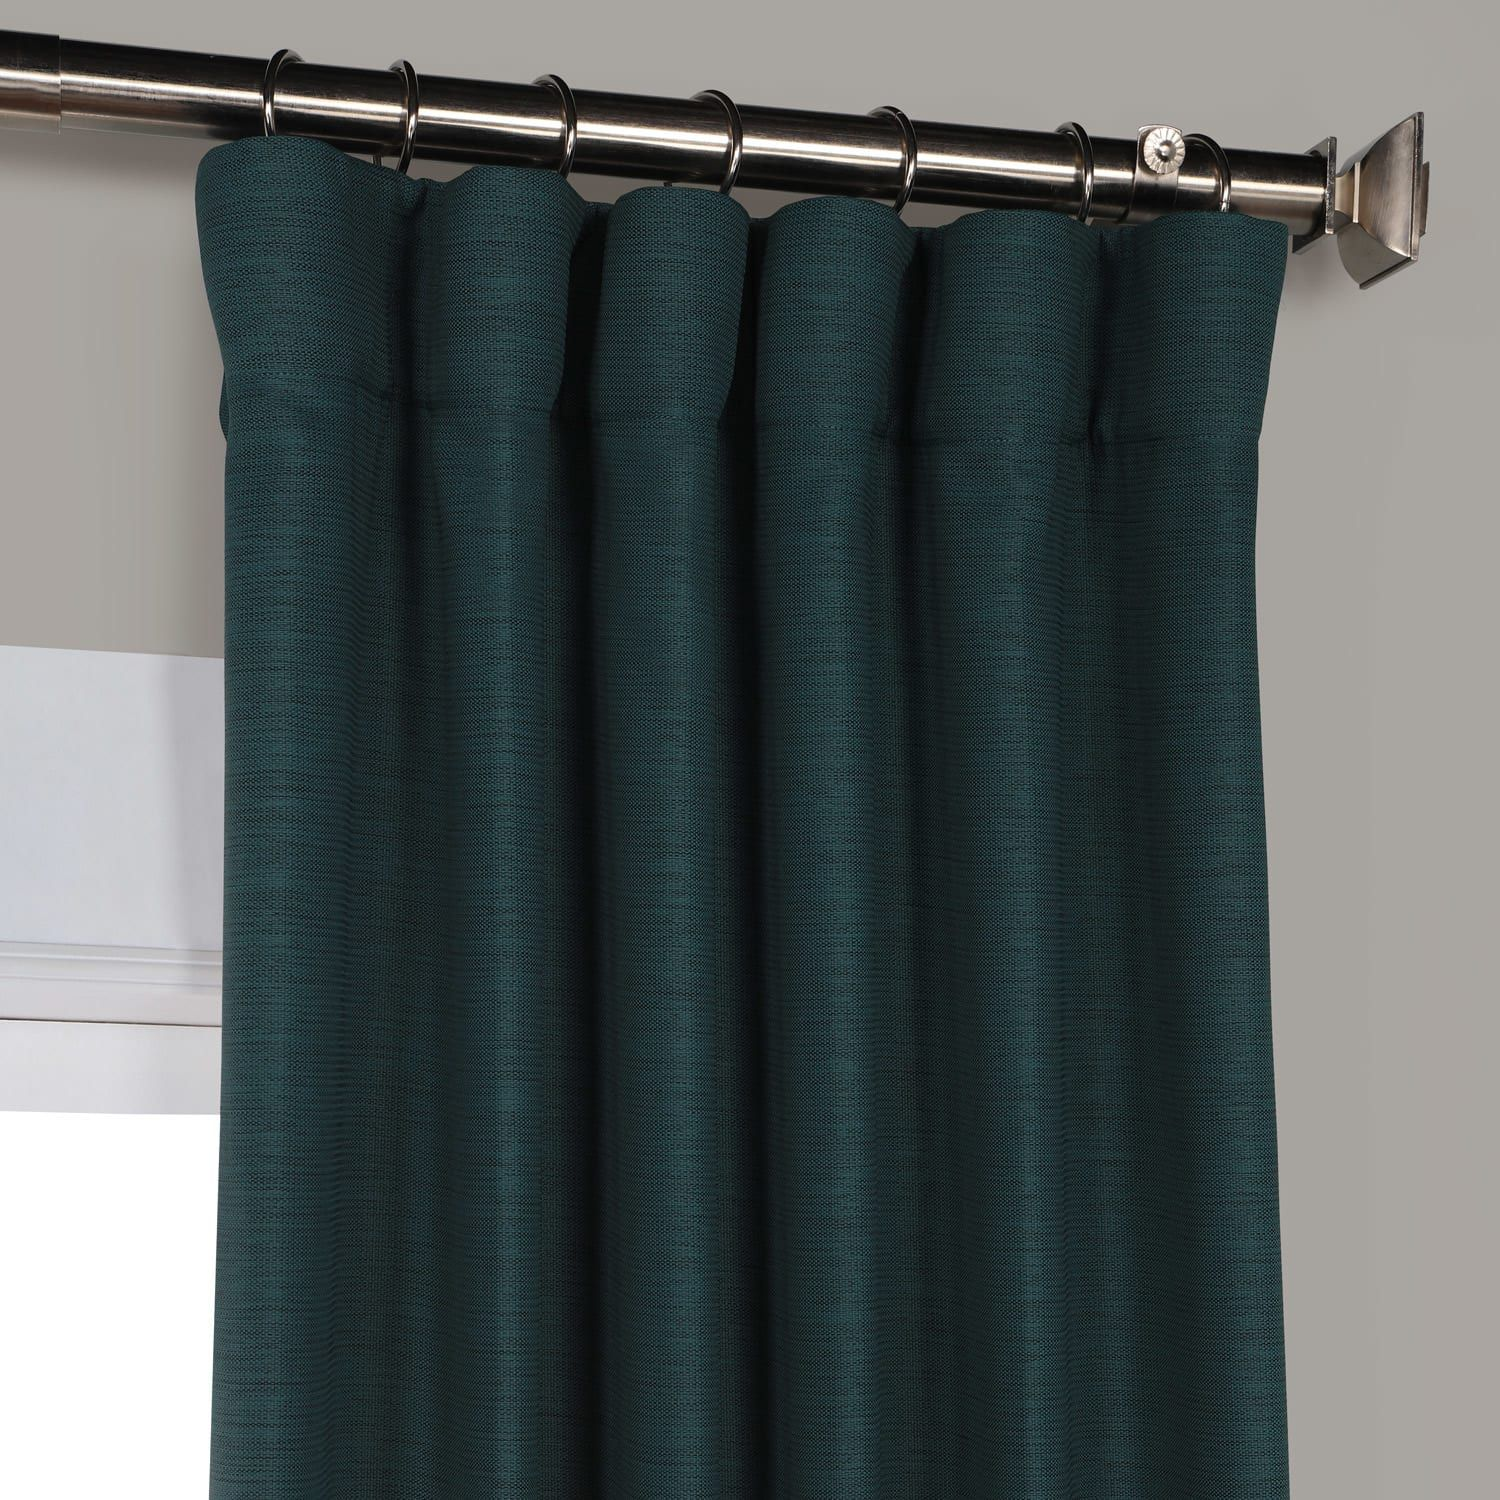 Teal Blackout Curtains Bayberry Teal Bellino Blackout Curtain Bellino Textured